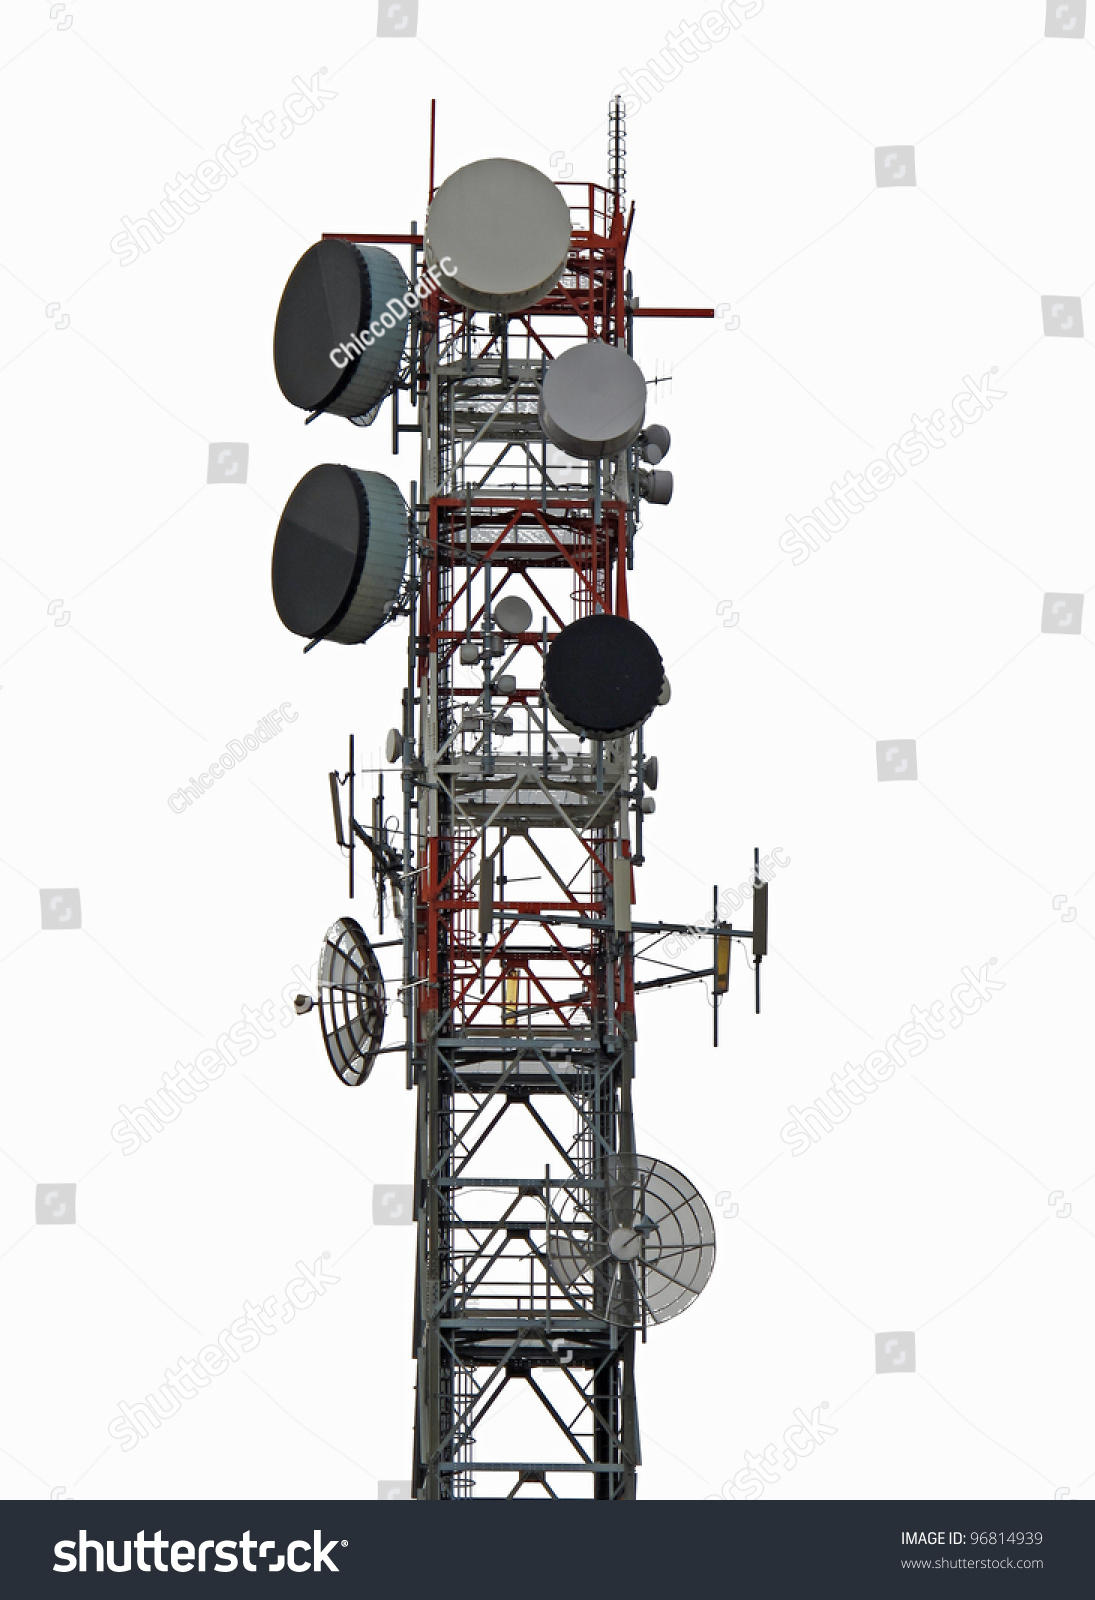 how to build a mobile phone antenna